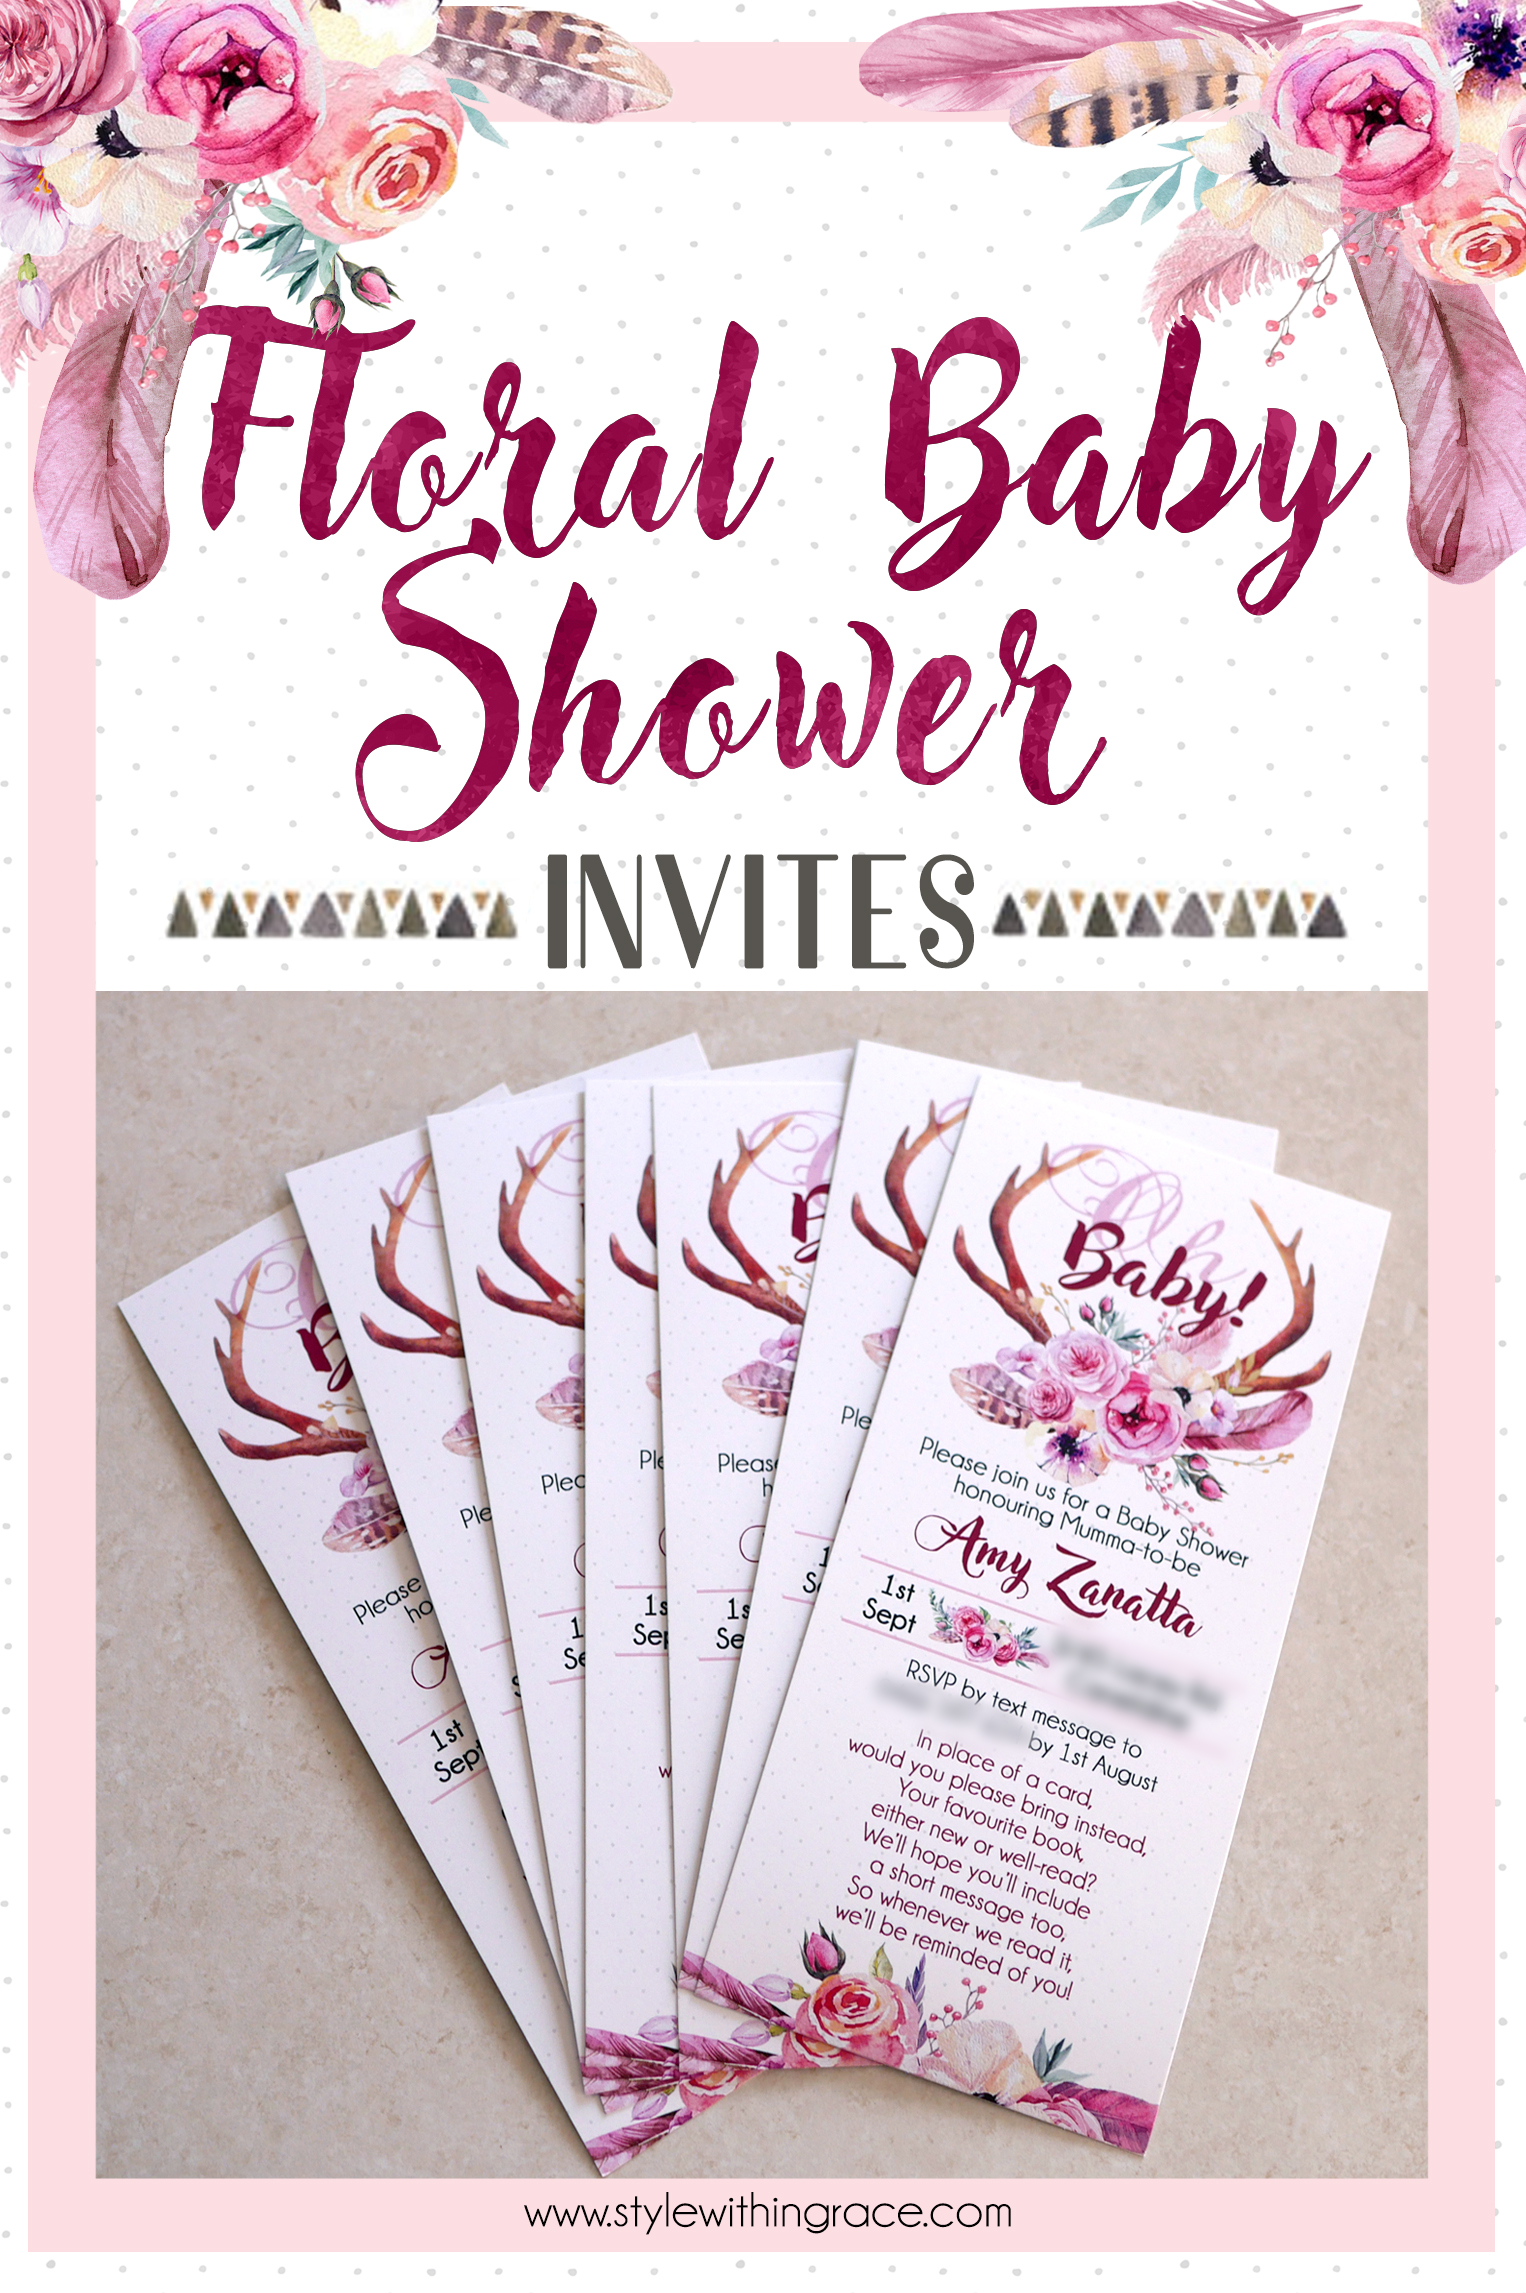 Celebrate the baby girl on the way with these lovely spring boho watercolour floral baby shower invites. Free printable templates included and printing instructions to get perfect results! Stress free party invitations for the expectant mother.